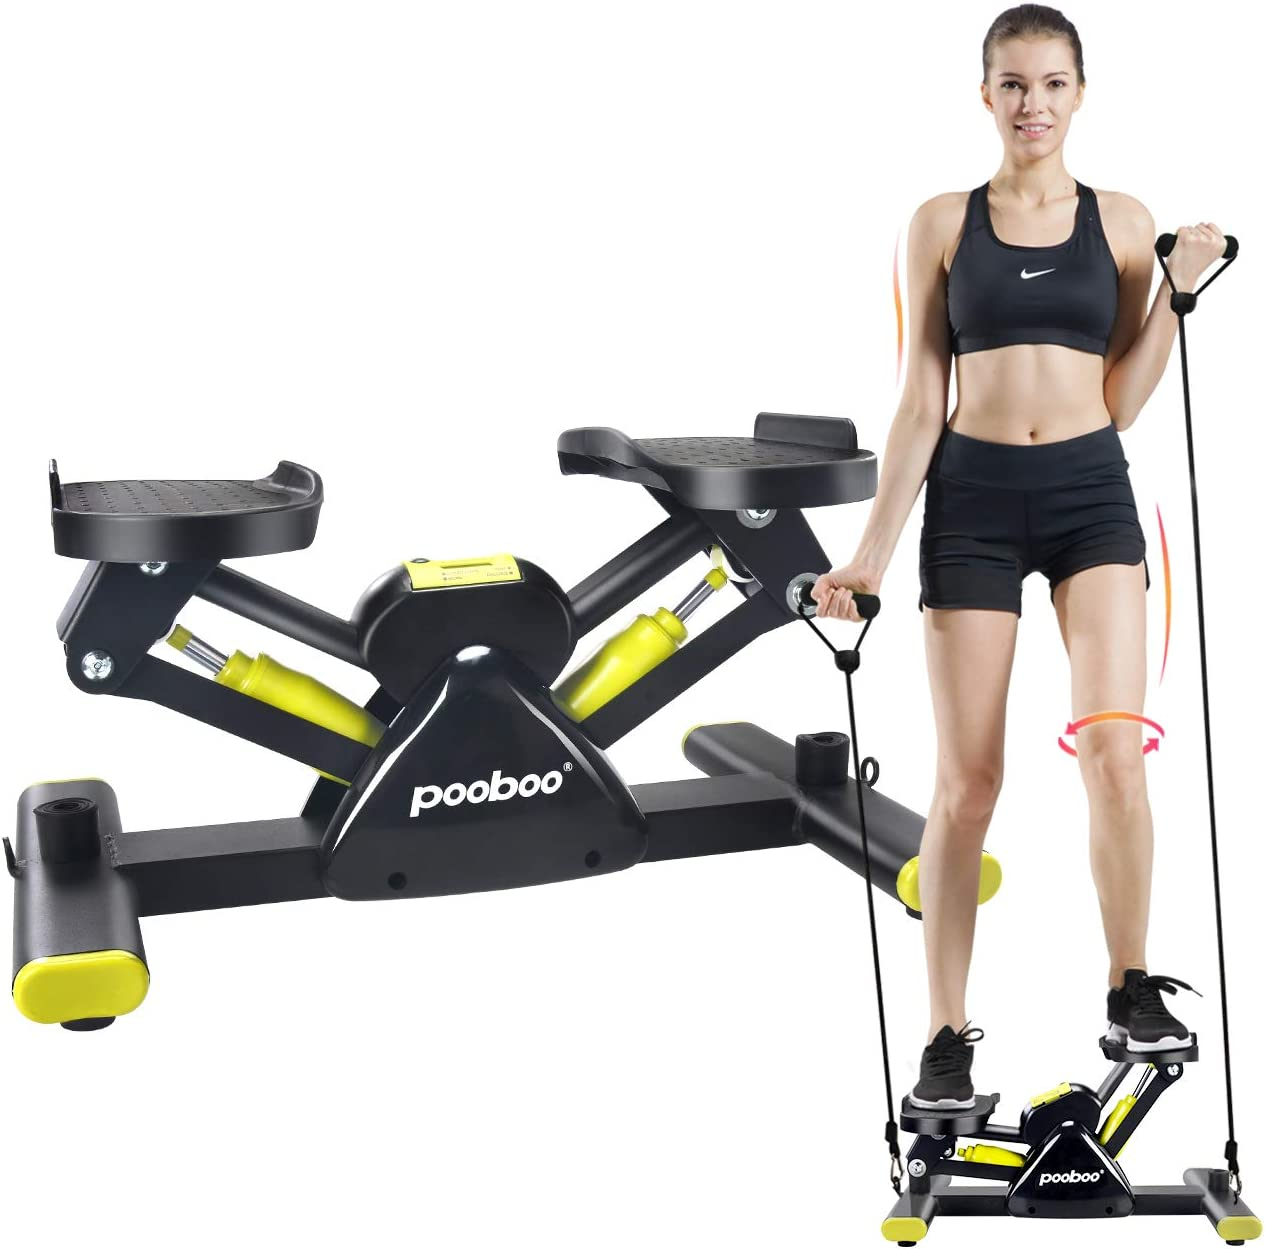 L Bombing new work New Shipping Free Shipping NOW Adjustable Mini Stair Stepper Mach Equipment Exercise Step